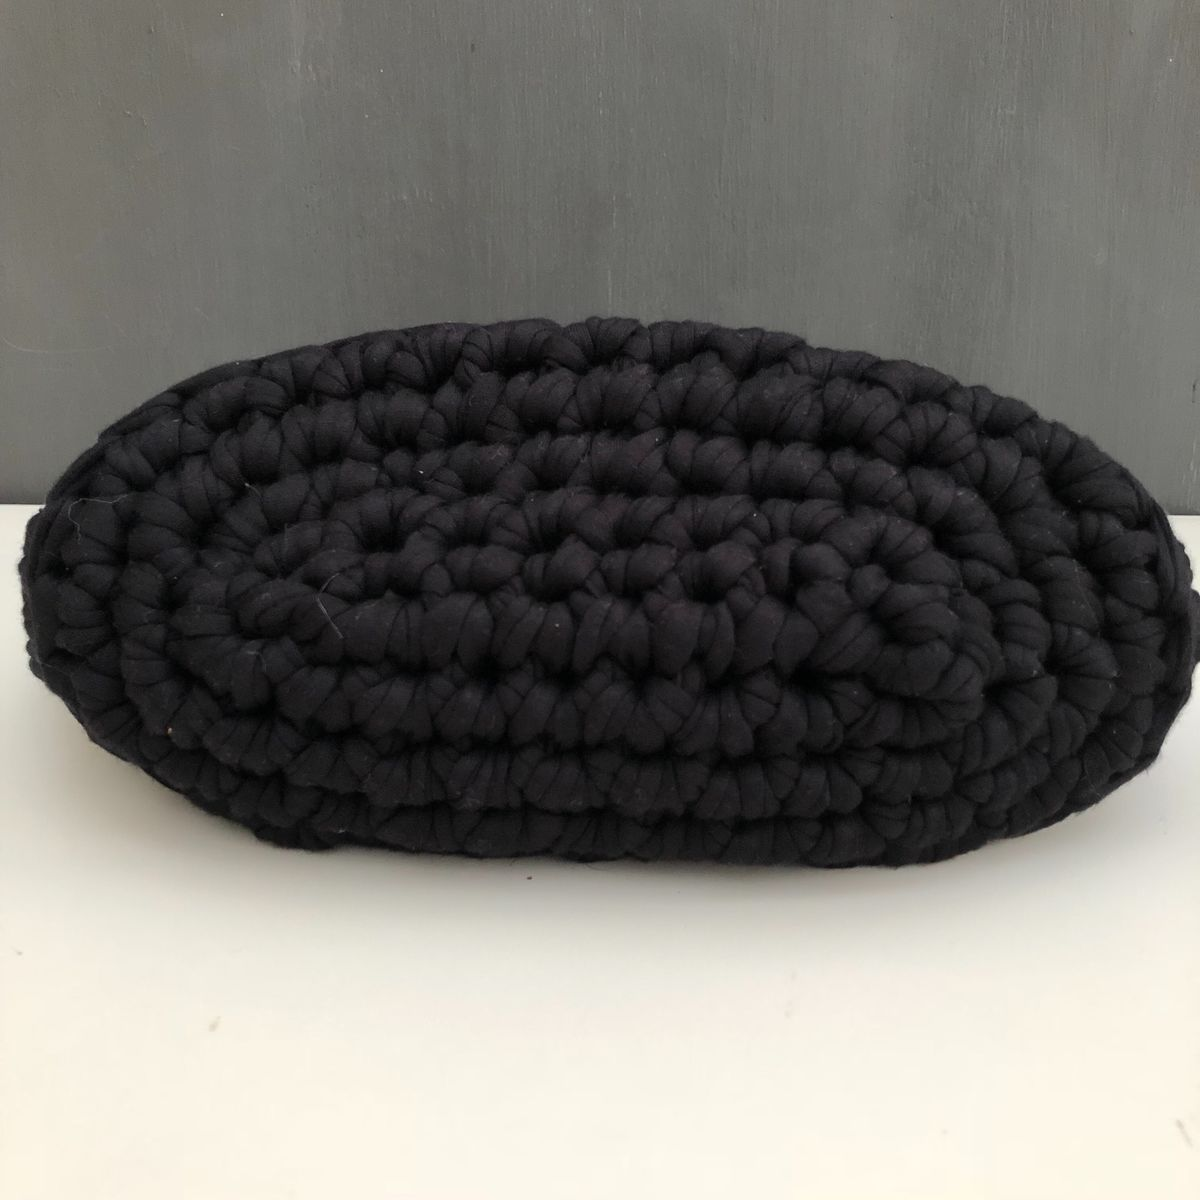 Chunky stitched monochrome storage basket - product images  of